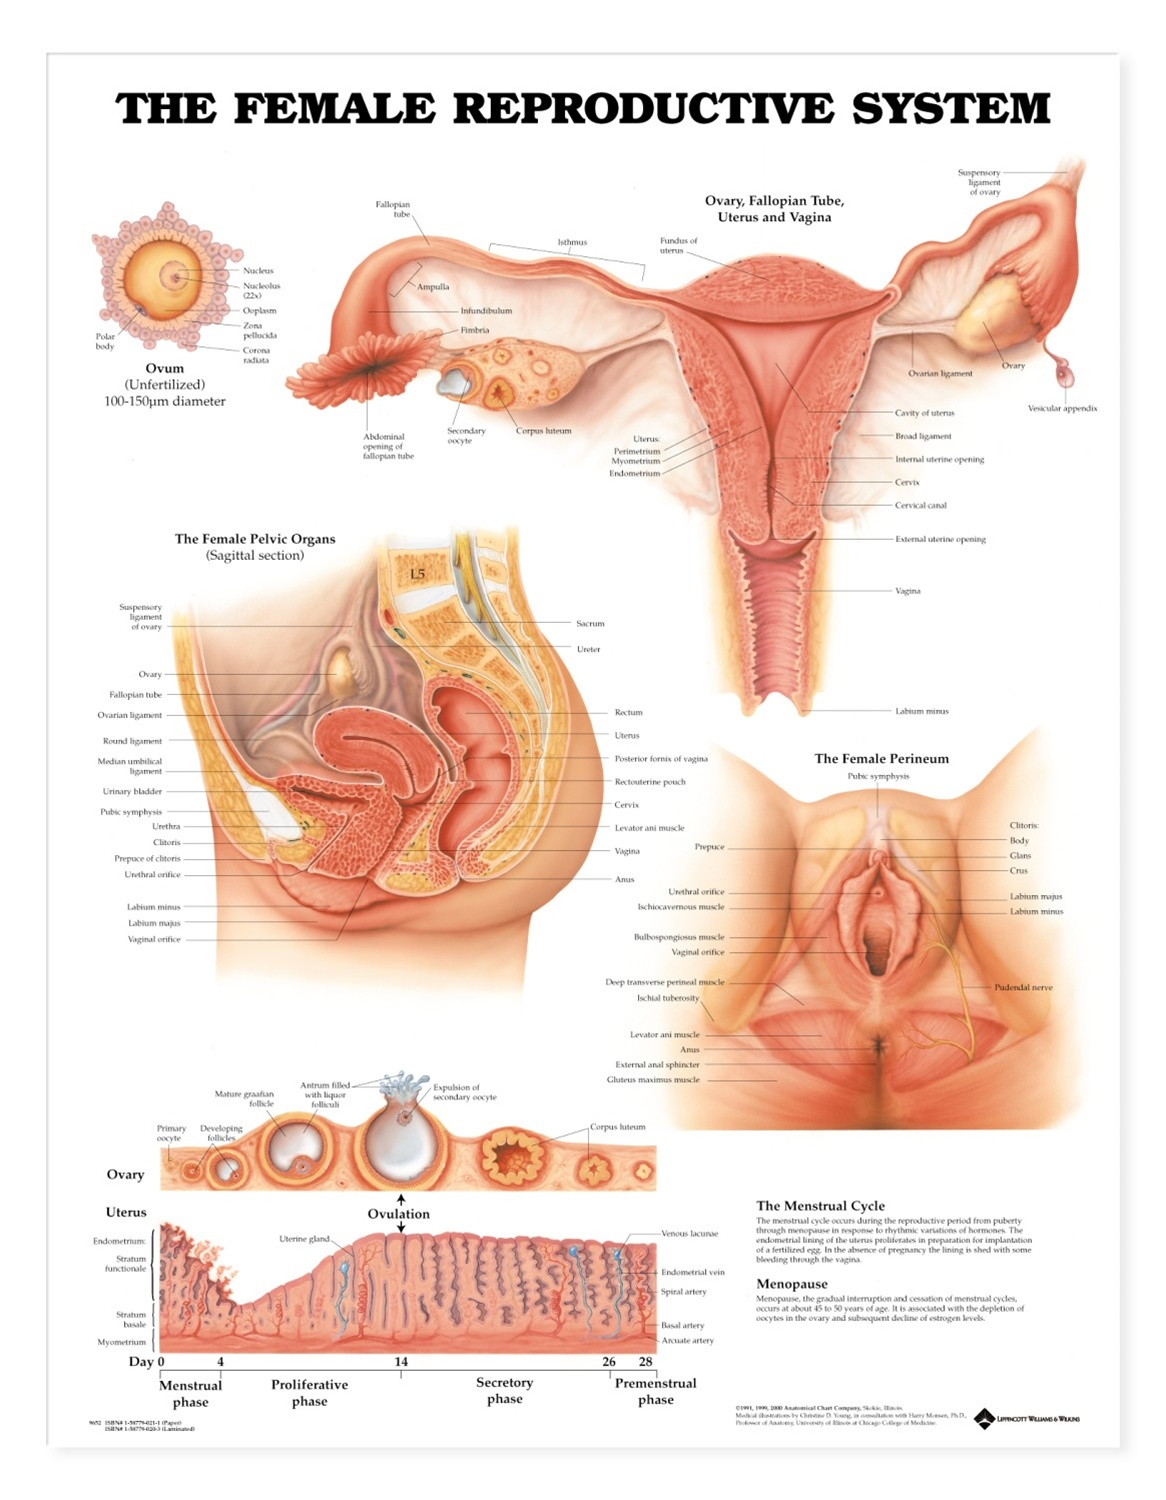 The Female Reproductive System Anatomical Chart - Anatomy Models and ...